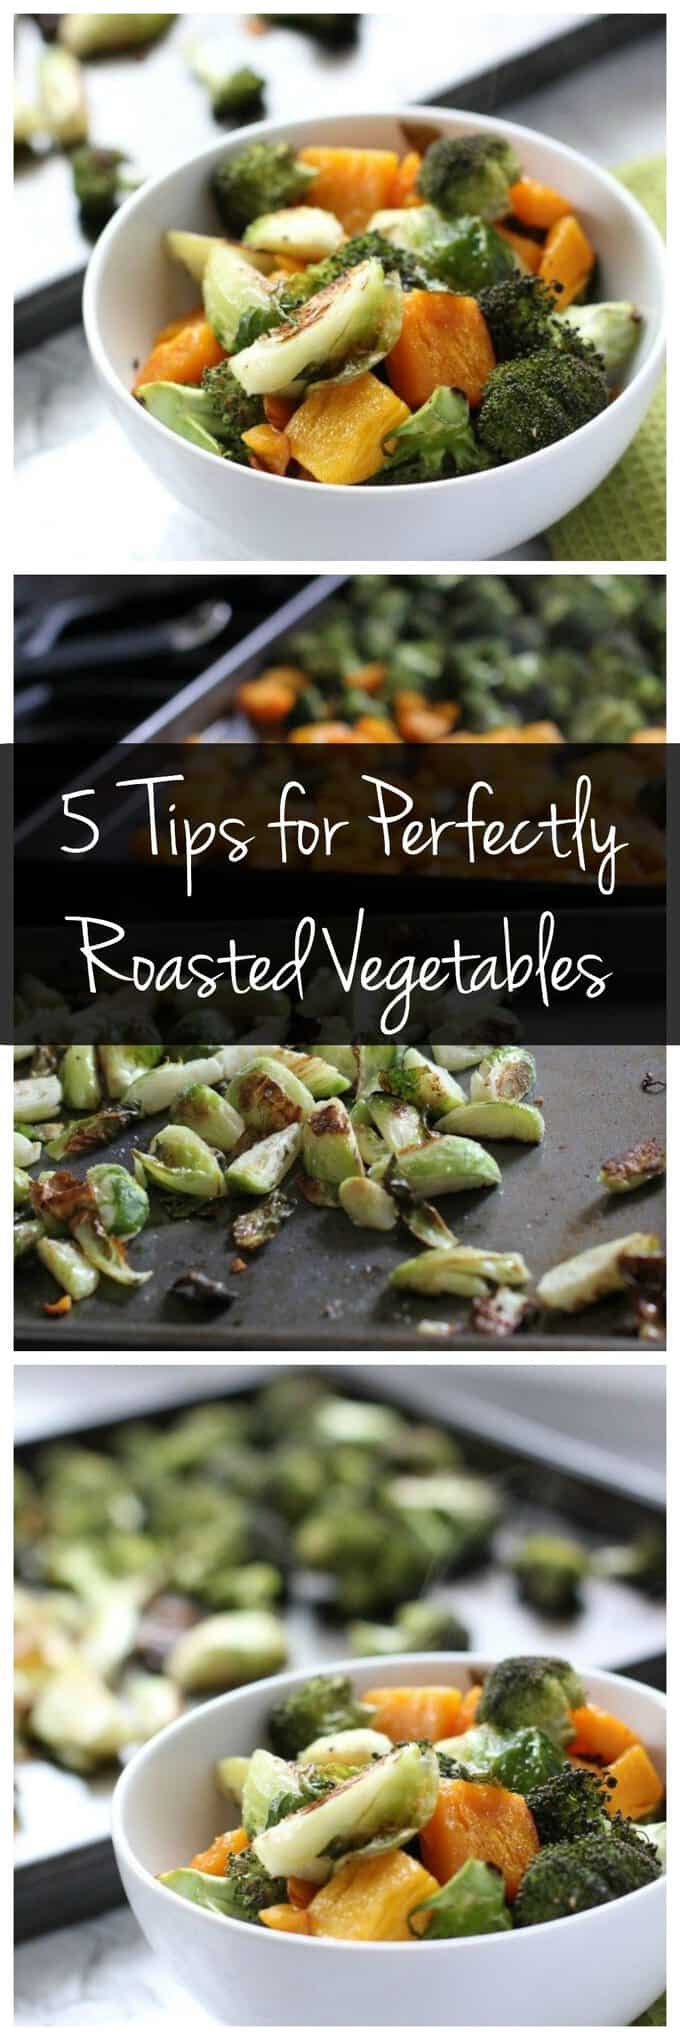 Follow these 5 tips for perfectly roasted vegetables! Crispy and caramelized on the outside, tender on the inside. These one pan dinners are easy & healthy! Try this when you're meal prepping or making dinner. #vegetarian